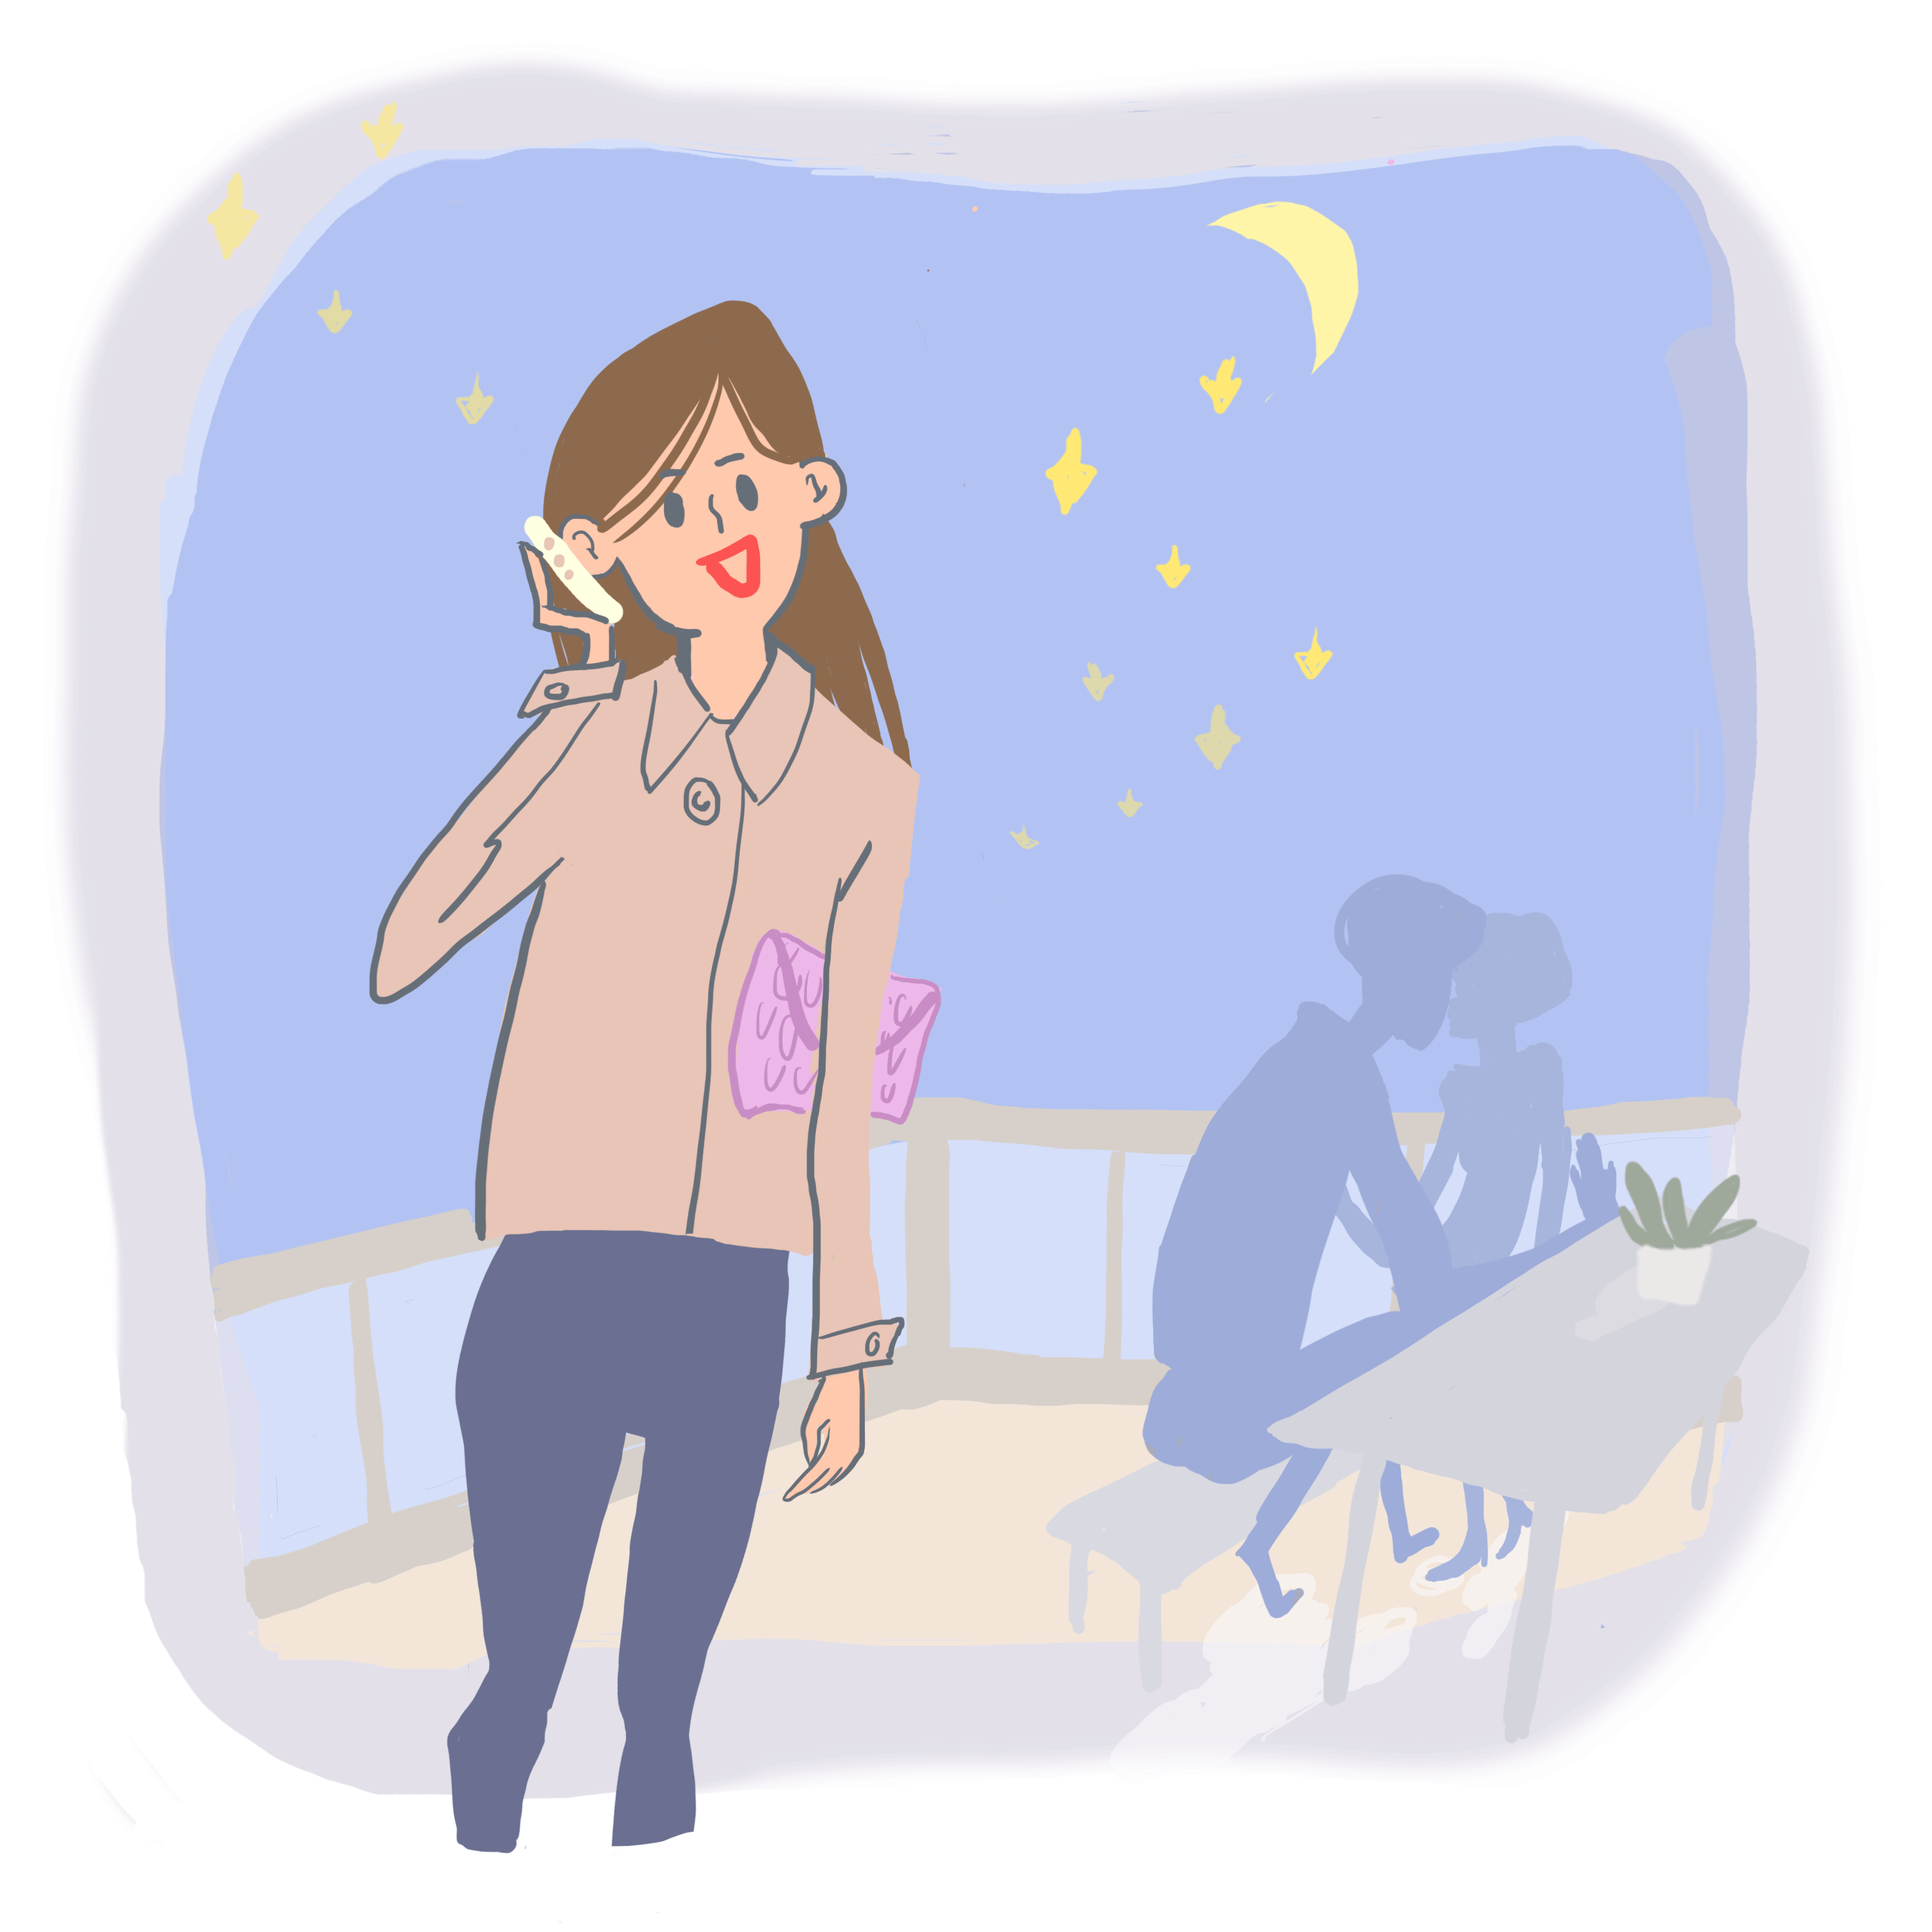 Illustration of woman talking in her cell phone, and a romatic couple at a table in the background. Colors are blue, beige, green and grey.